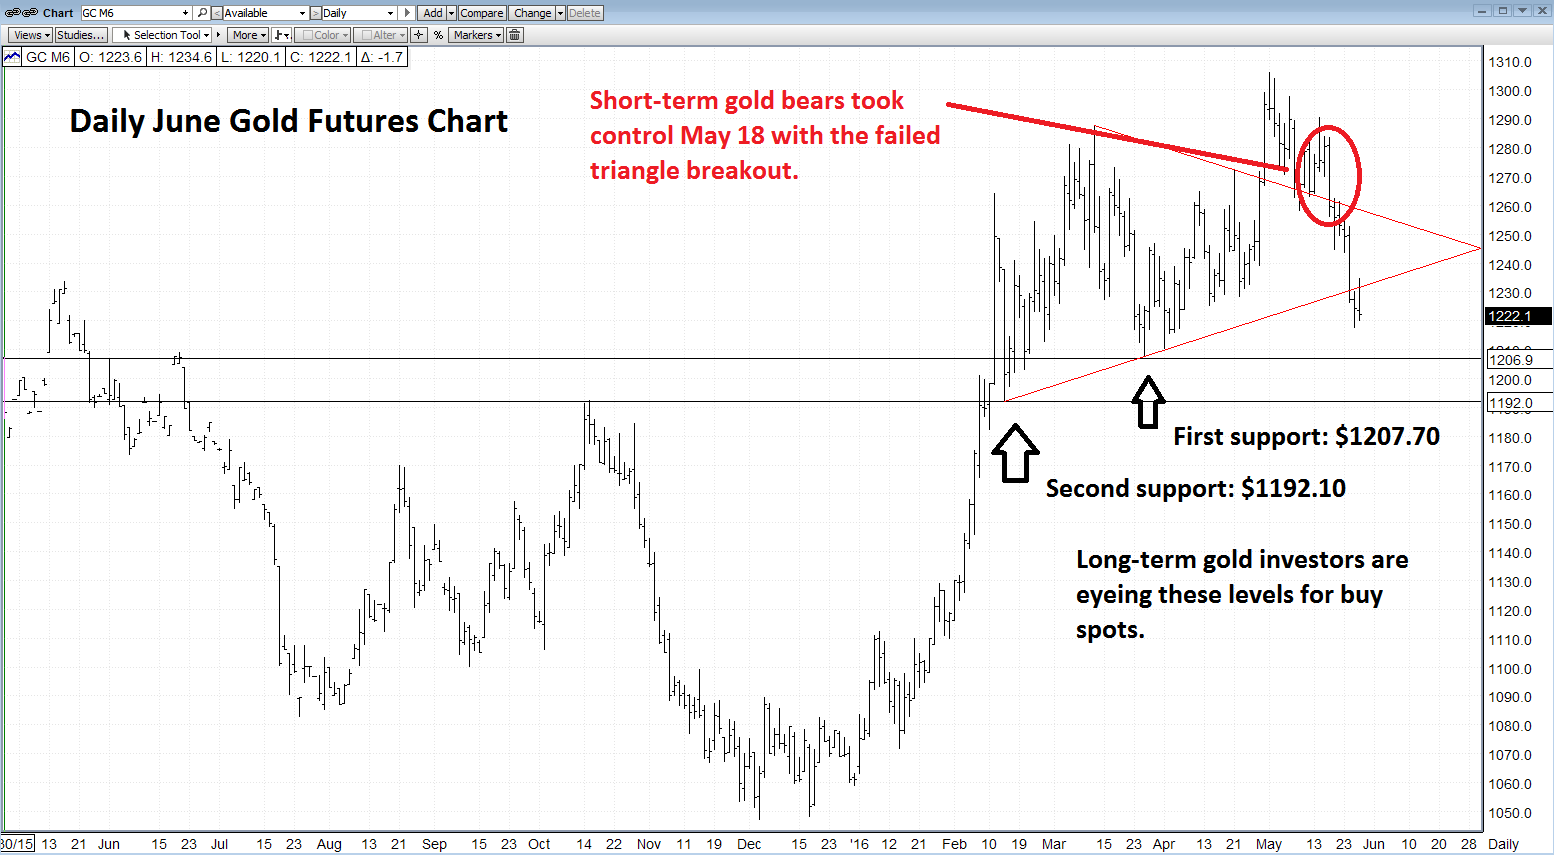 How to buy gold now - Gold Exchange Traded Fund